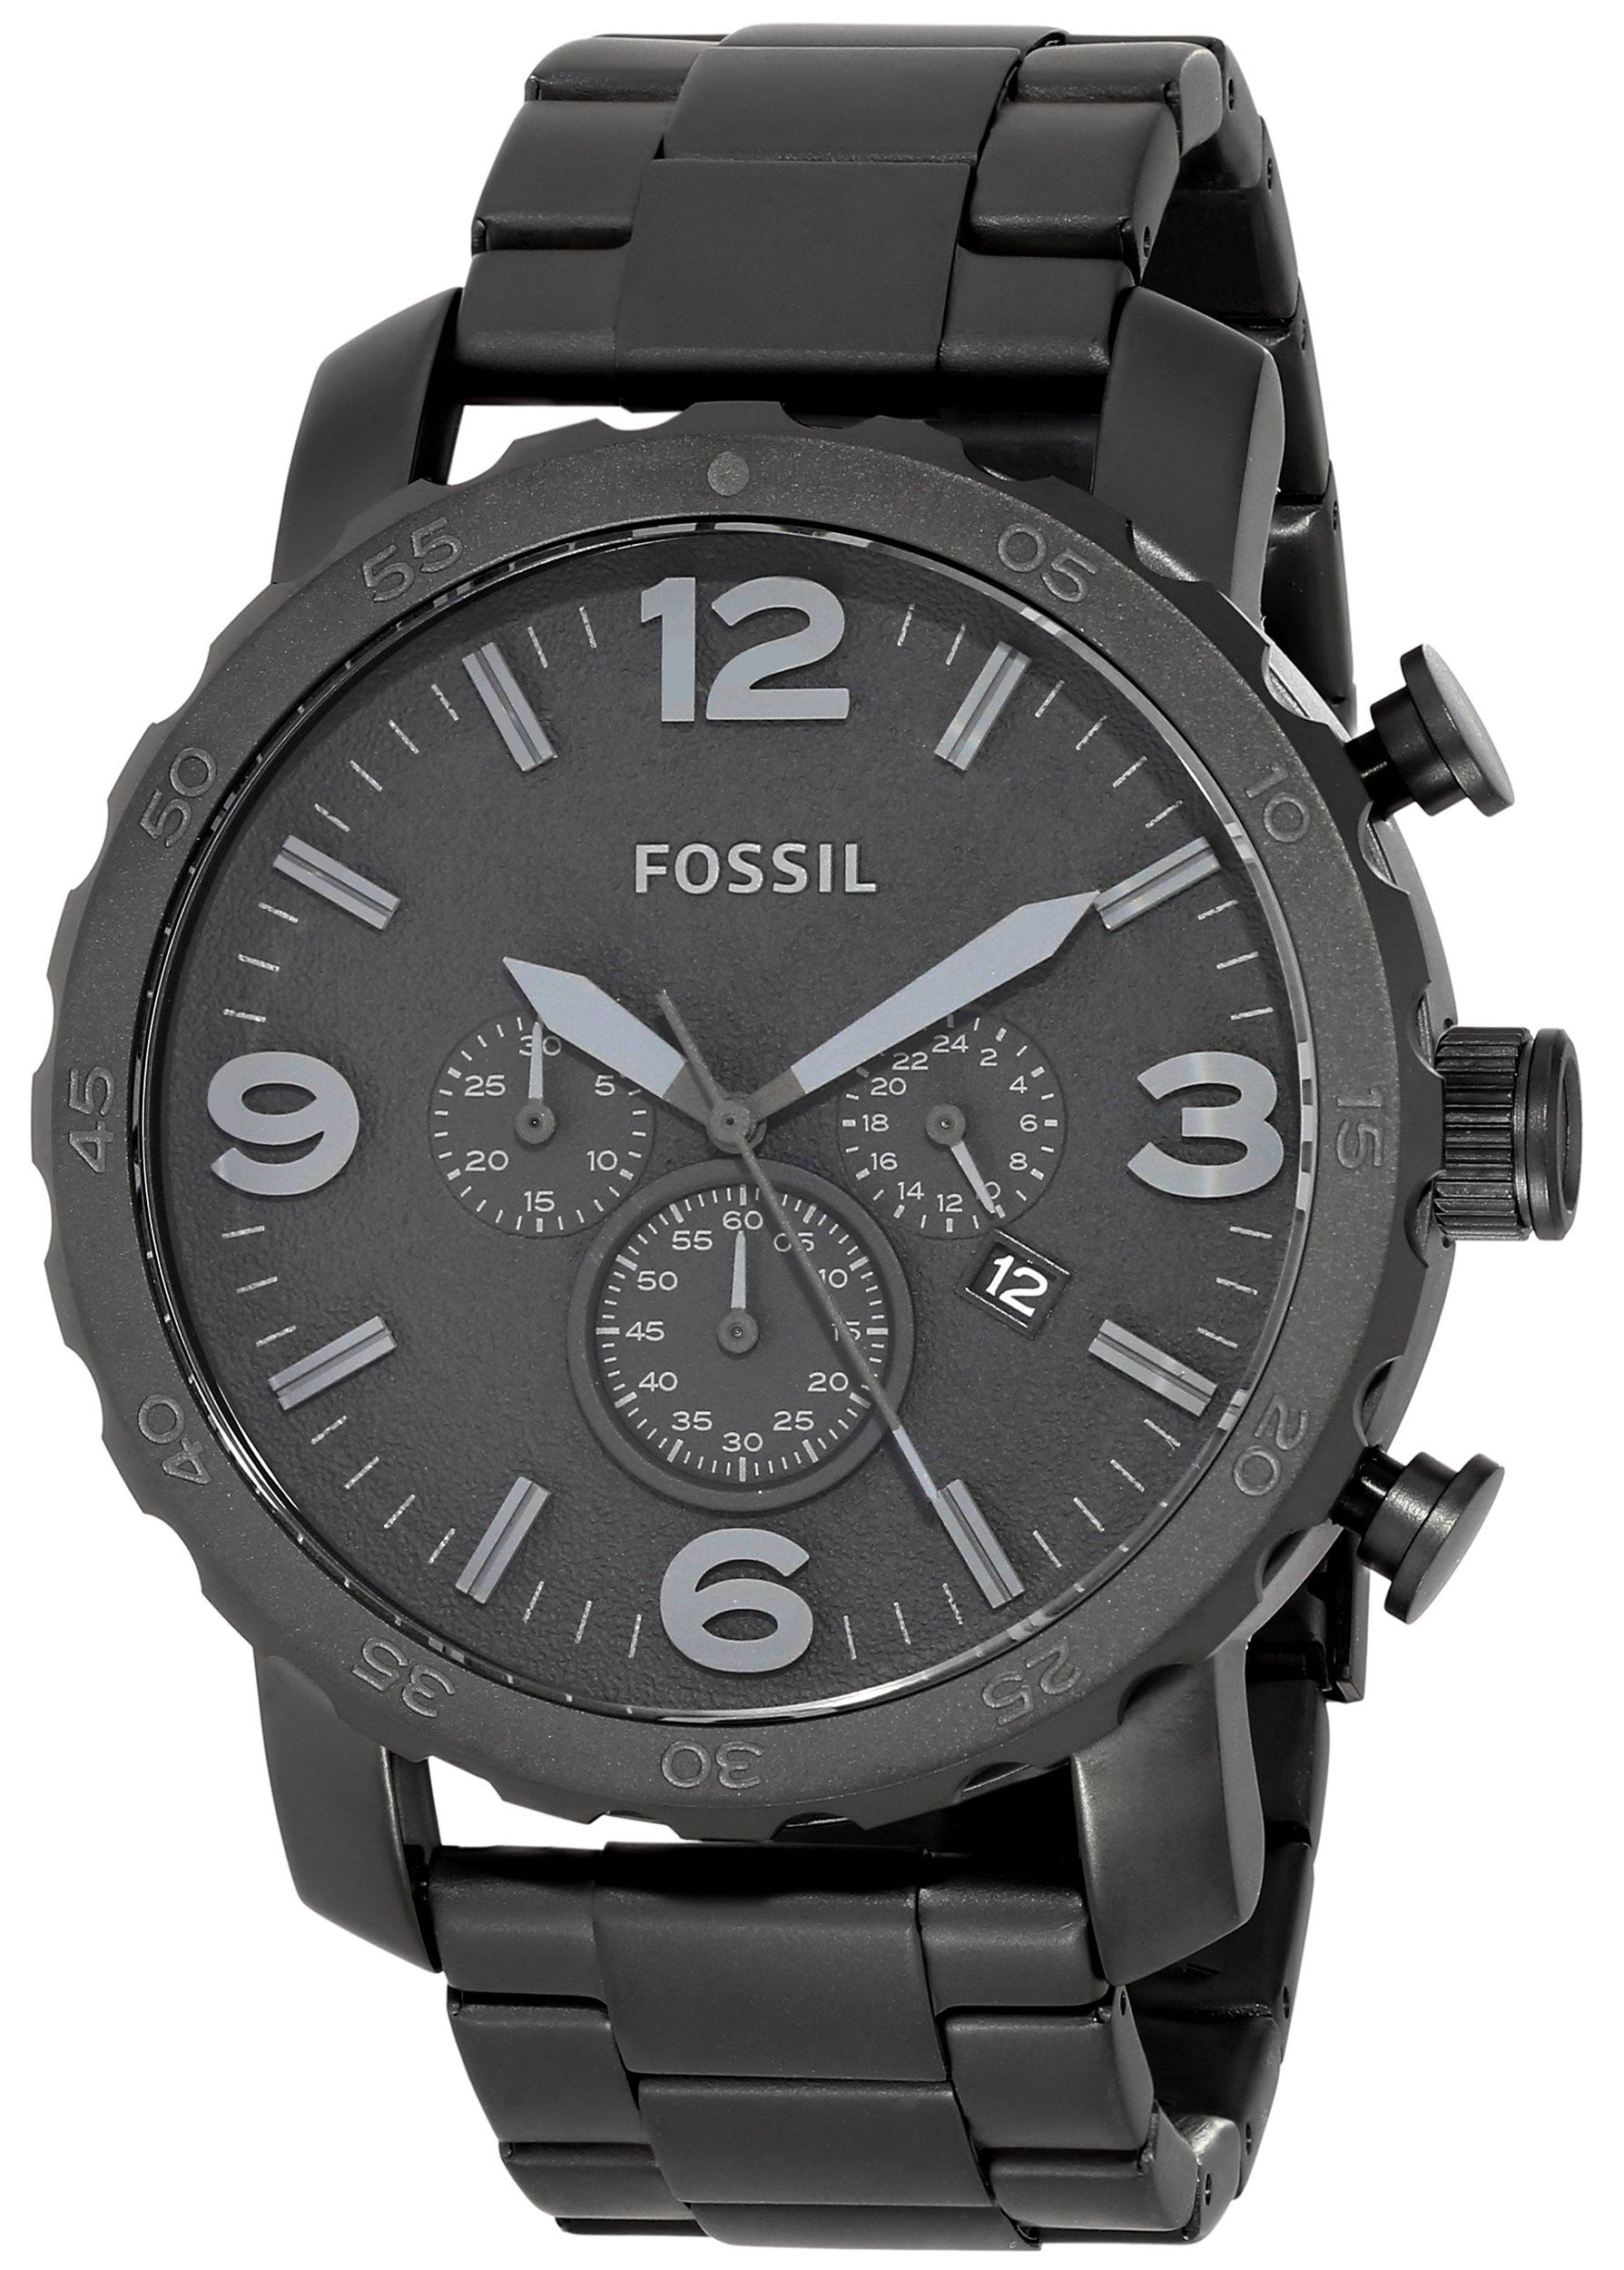 4e23473ab01 Fossil Men s JR1401 Nate Chronograph Stainless Steel Watch - Black ...